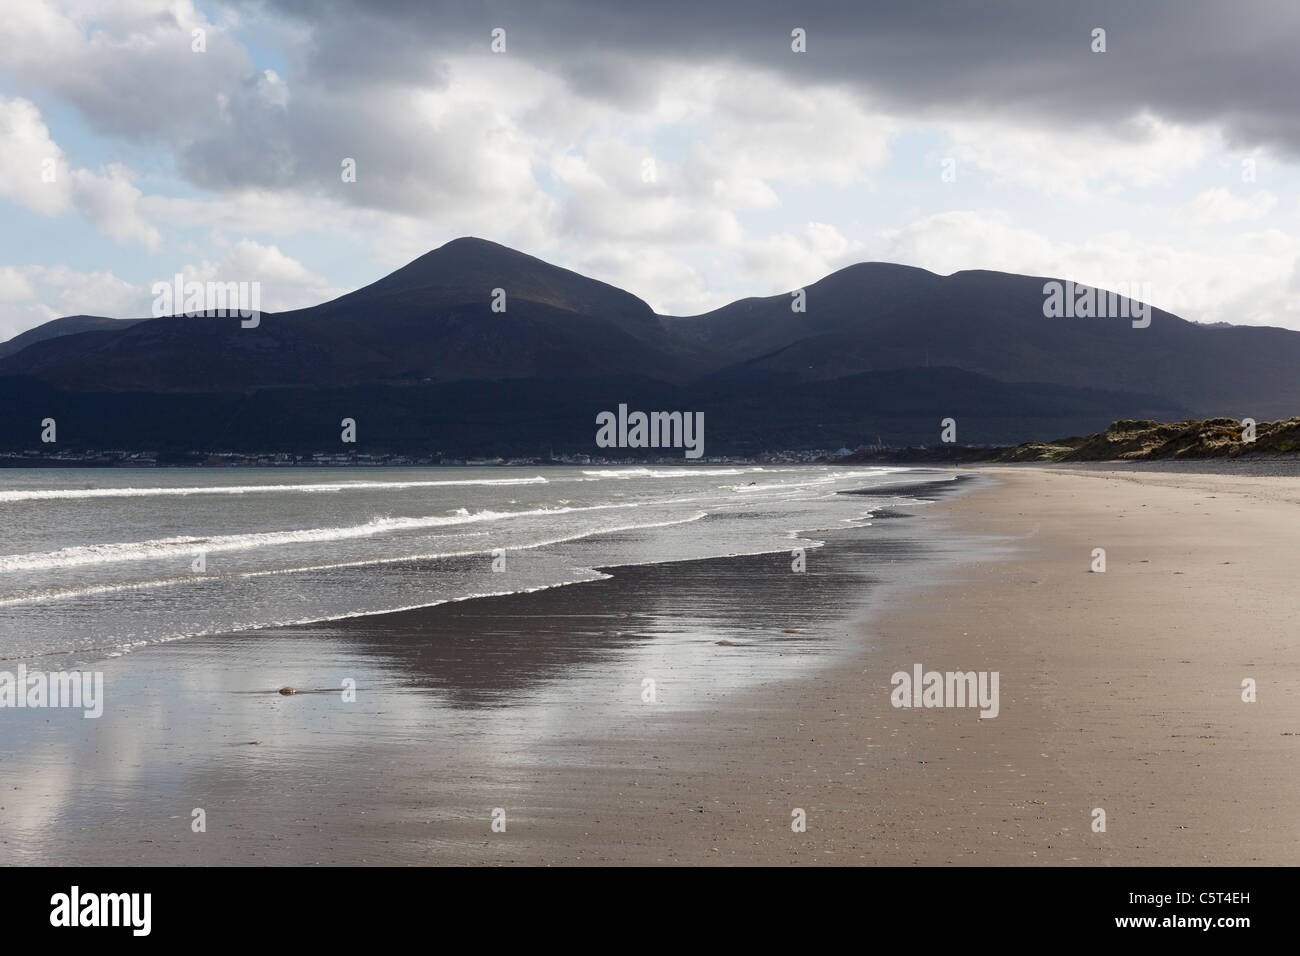 Mountains Ireland Stockfotos & Mountains Ireland Bilder - Alamy